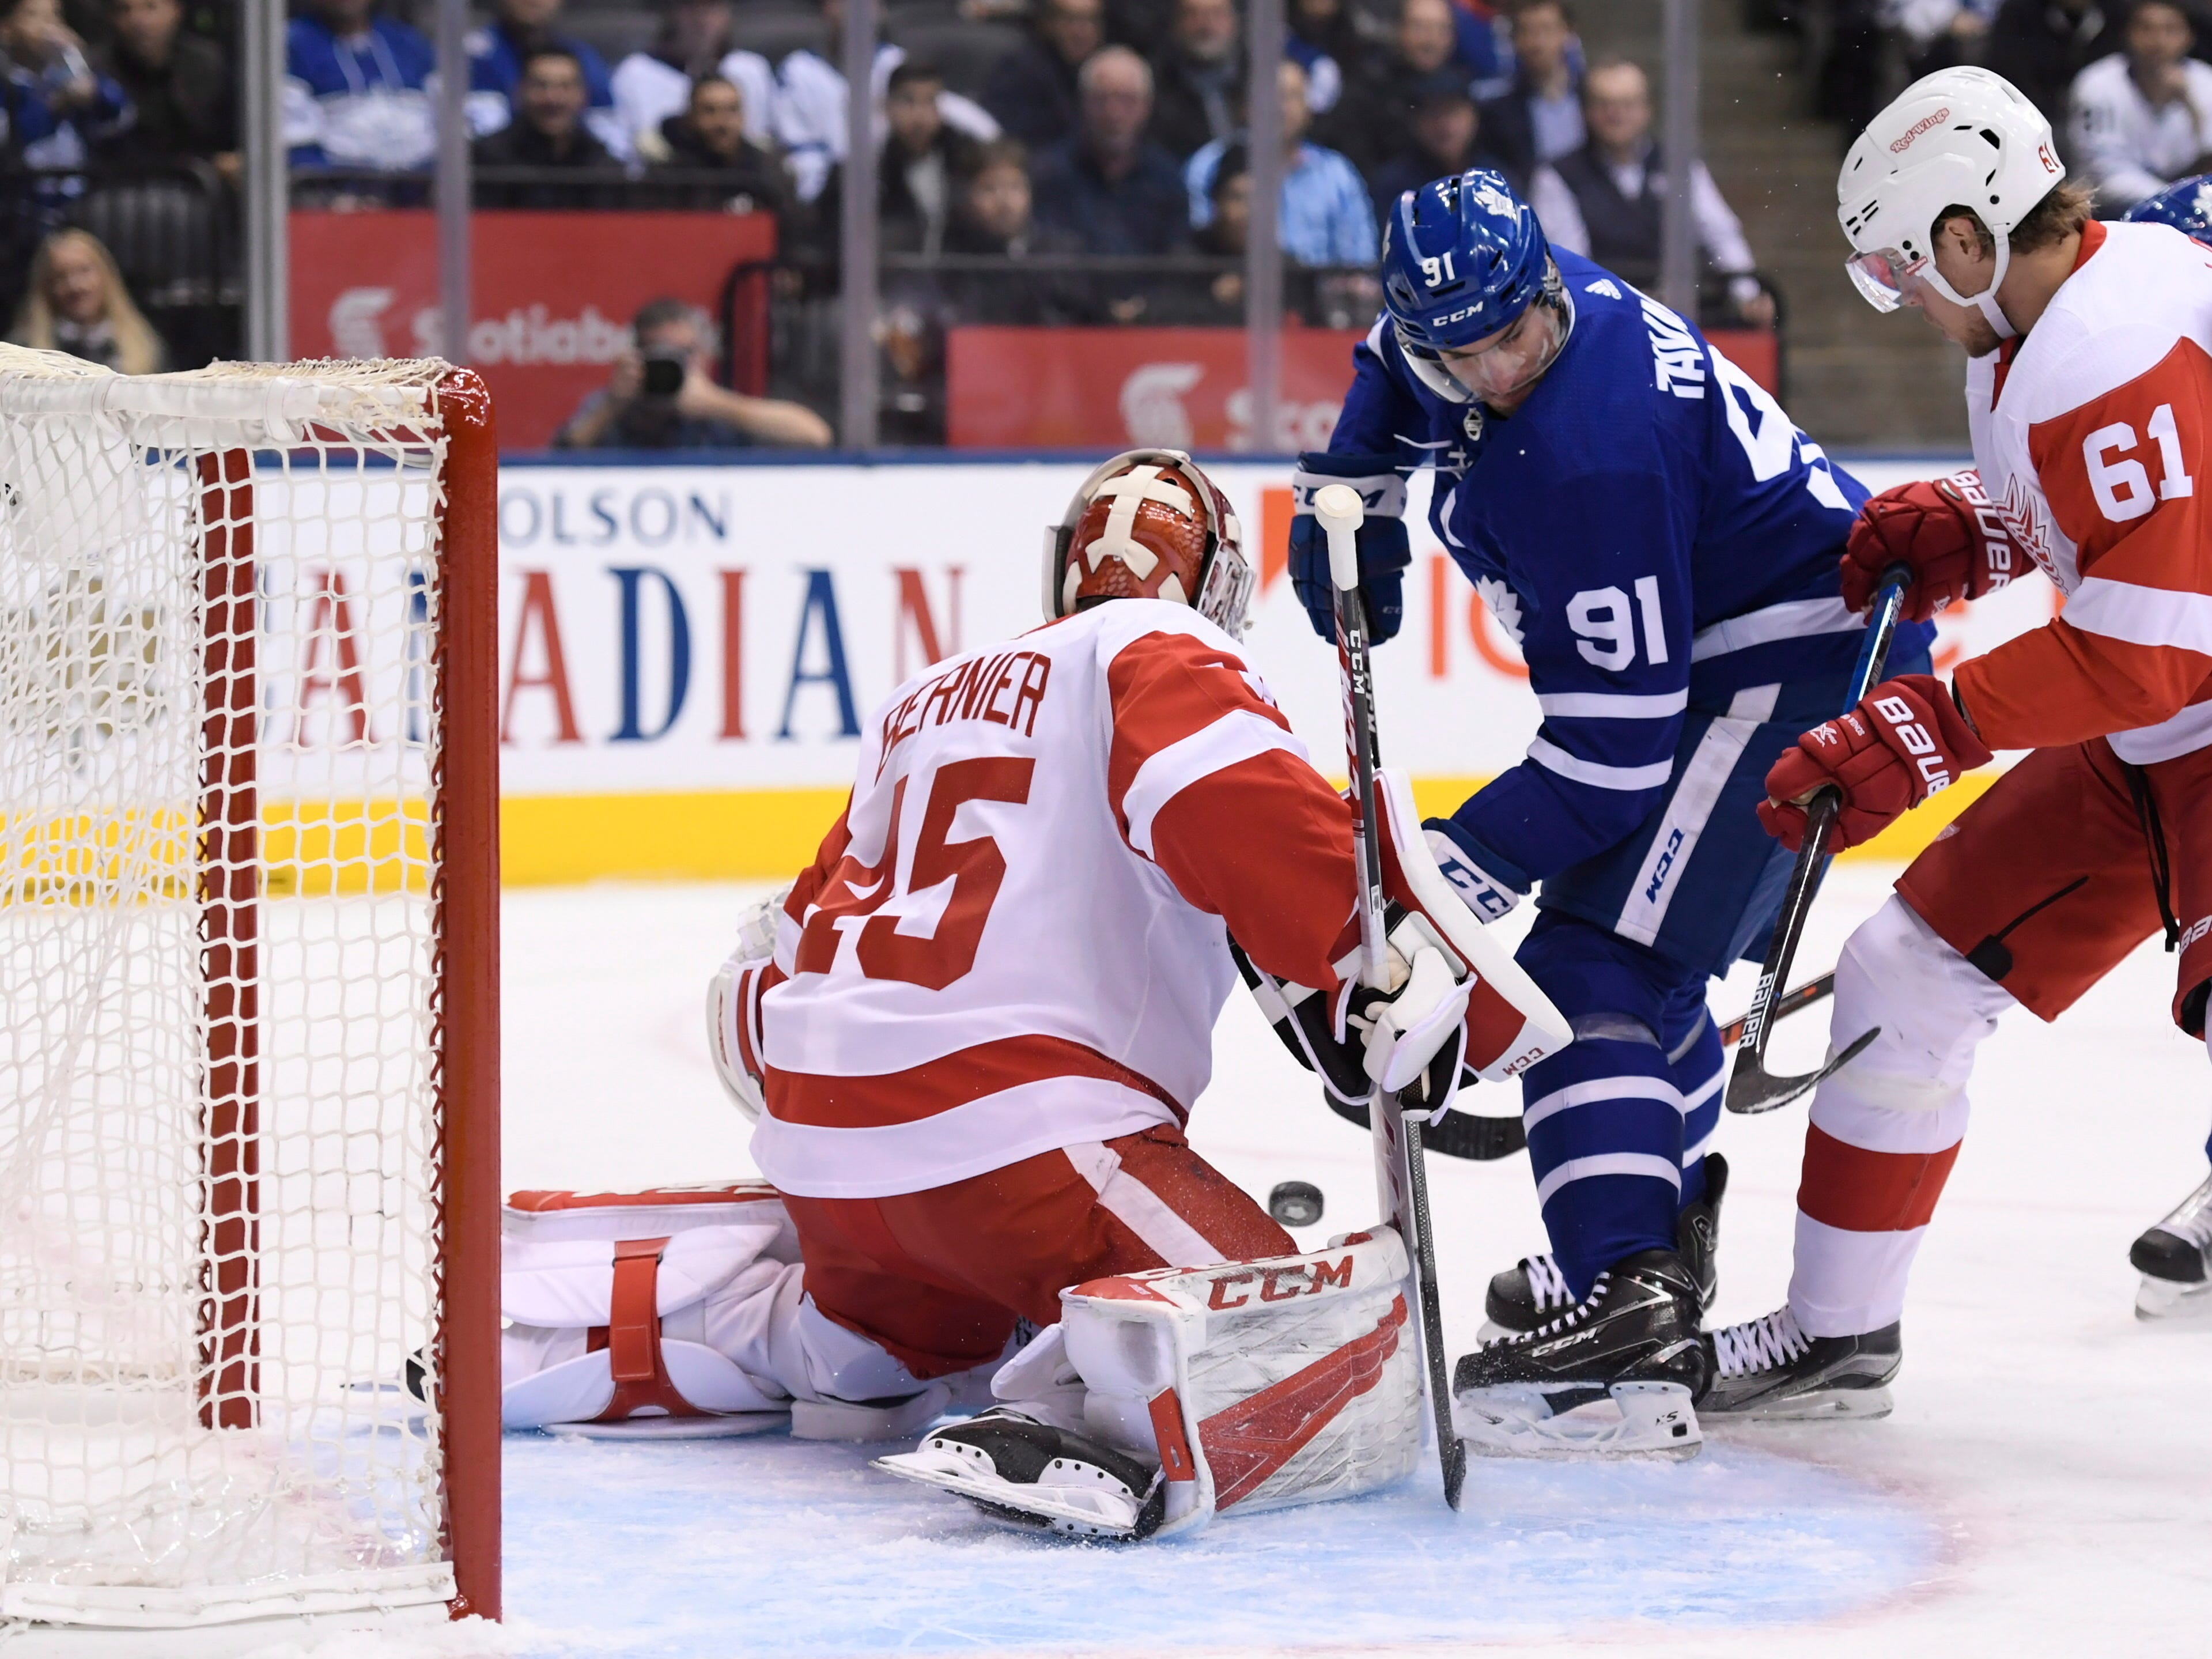 Maple Leafs center John Tavares is stopped by Red Wings goaltender Jonathan Bernier as center Jacob de la Rose moves in.